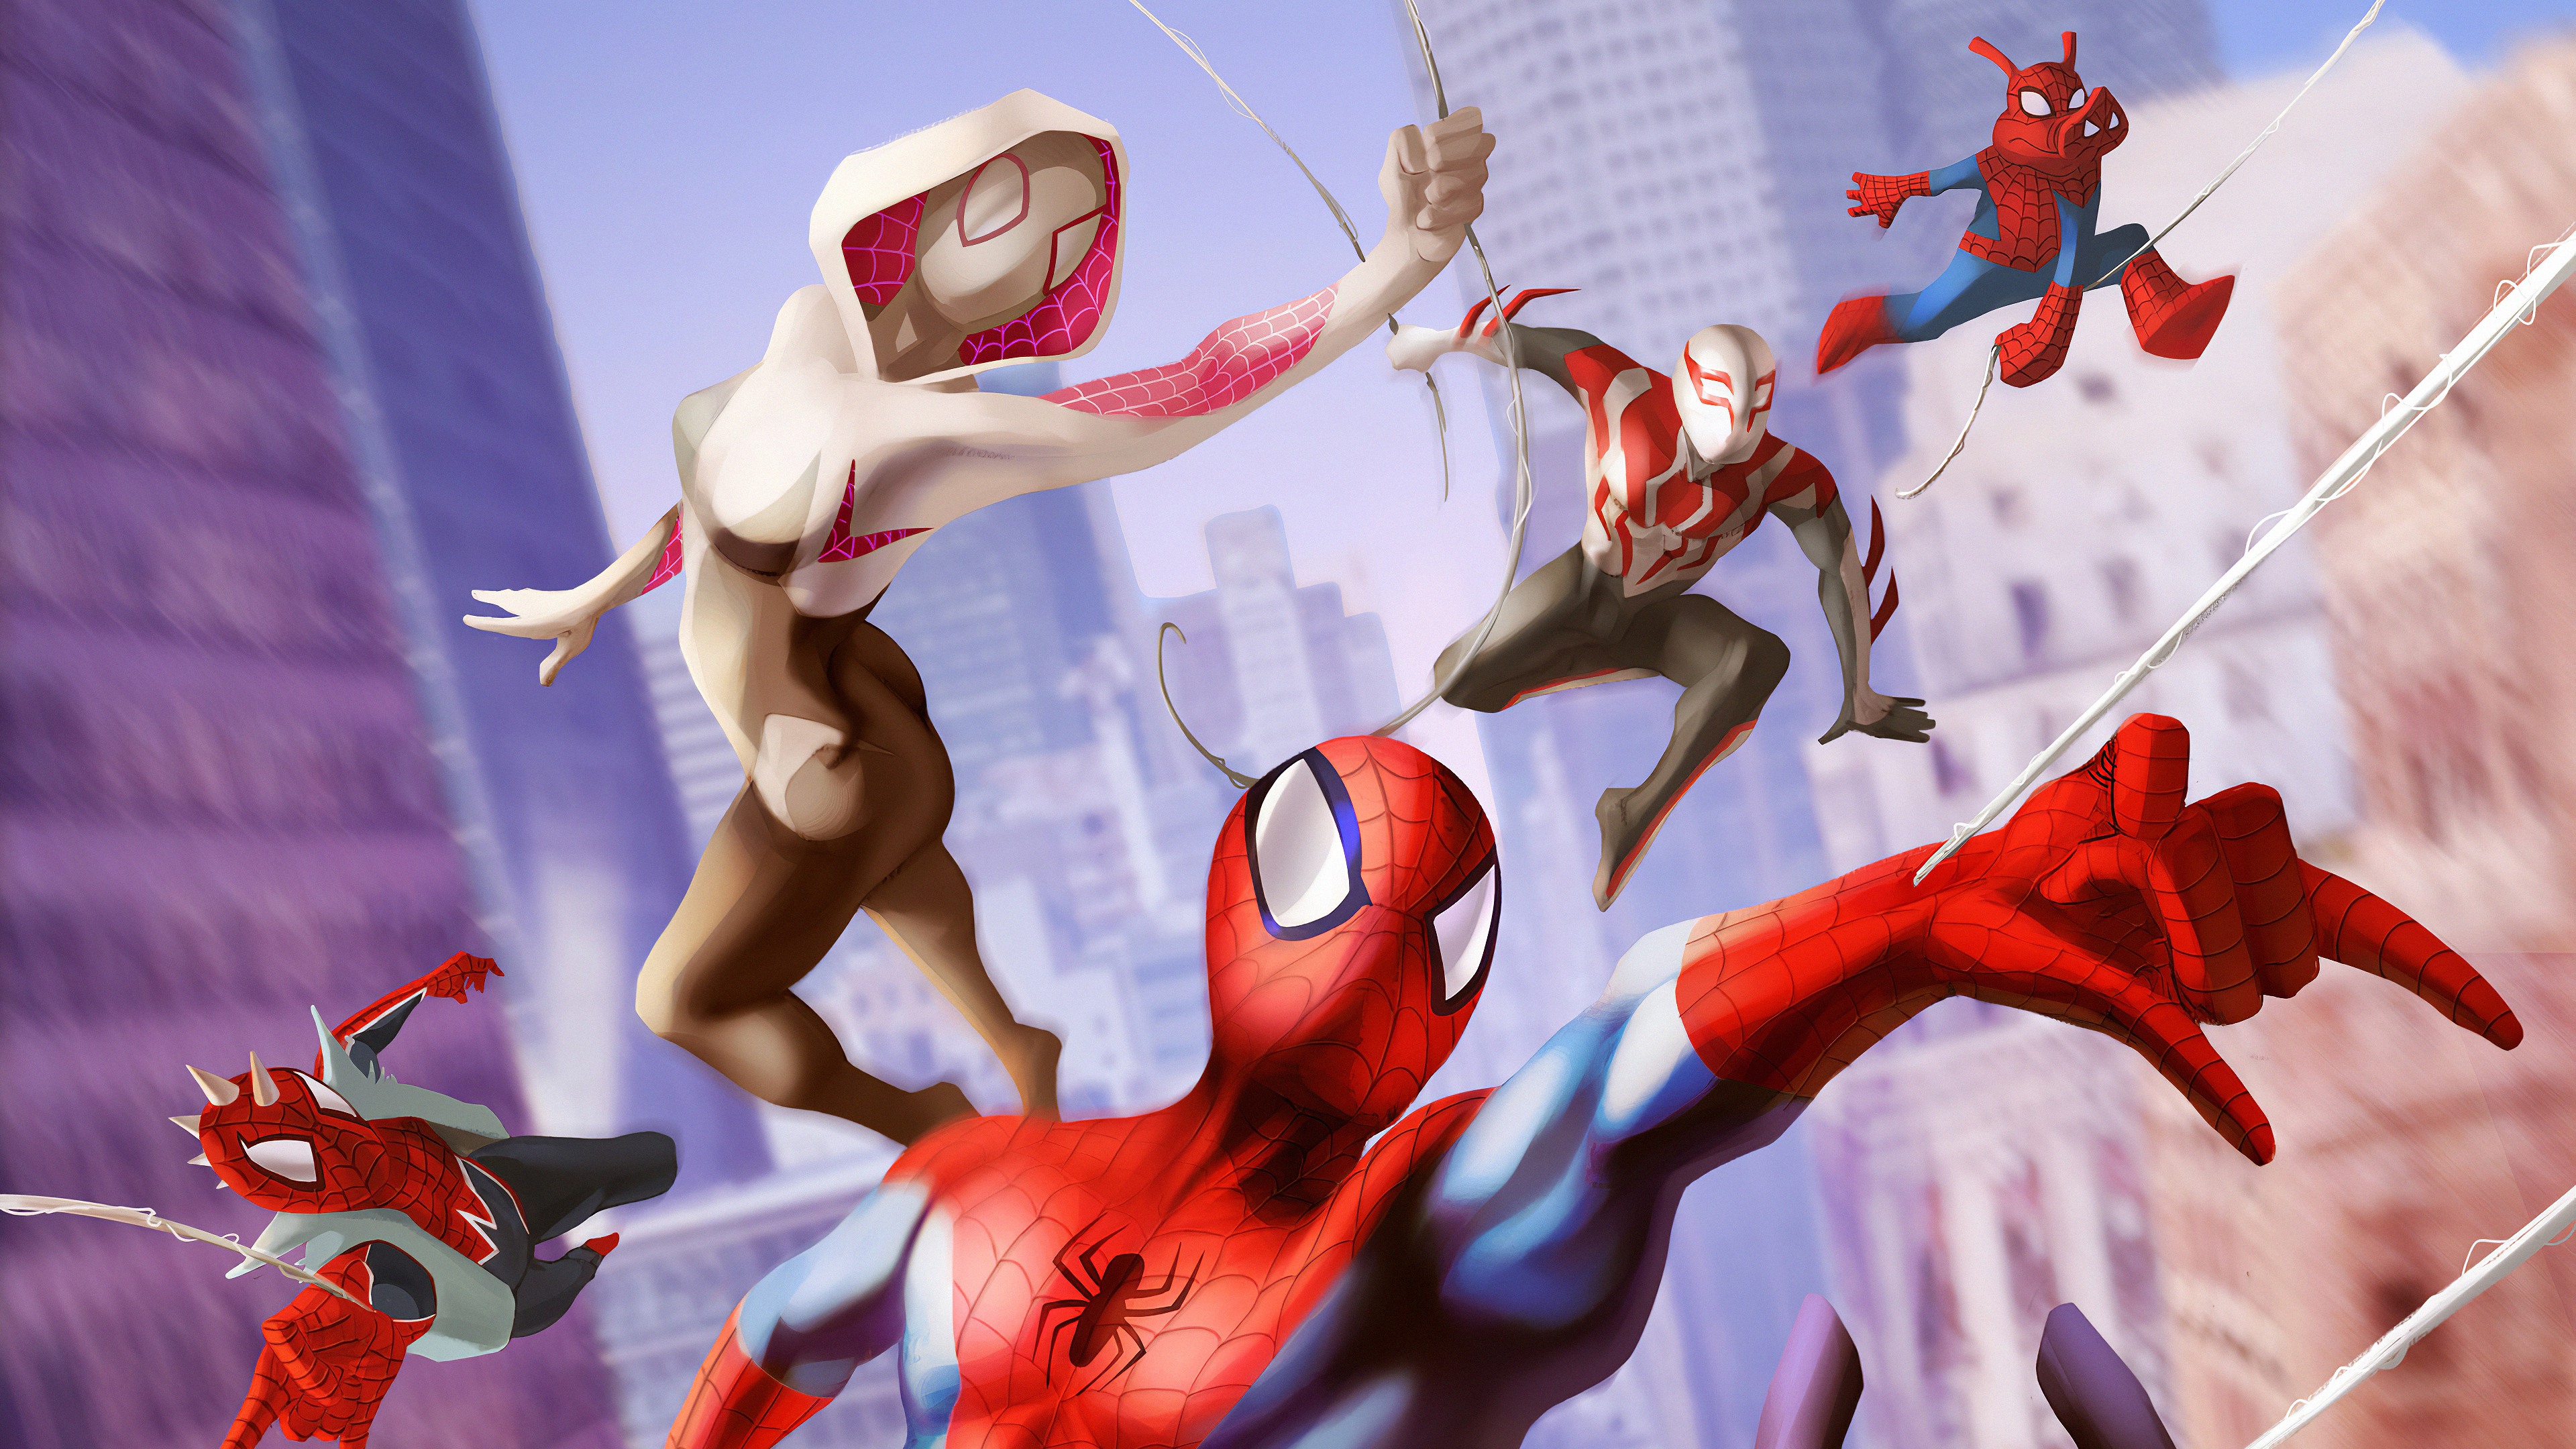 spiderman into the spiderverse 2 2022 movie 1575659383 - Spiderman Into The Spiderverse 2 2022 Movie -